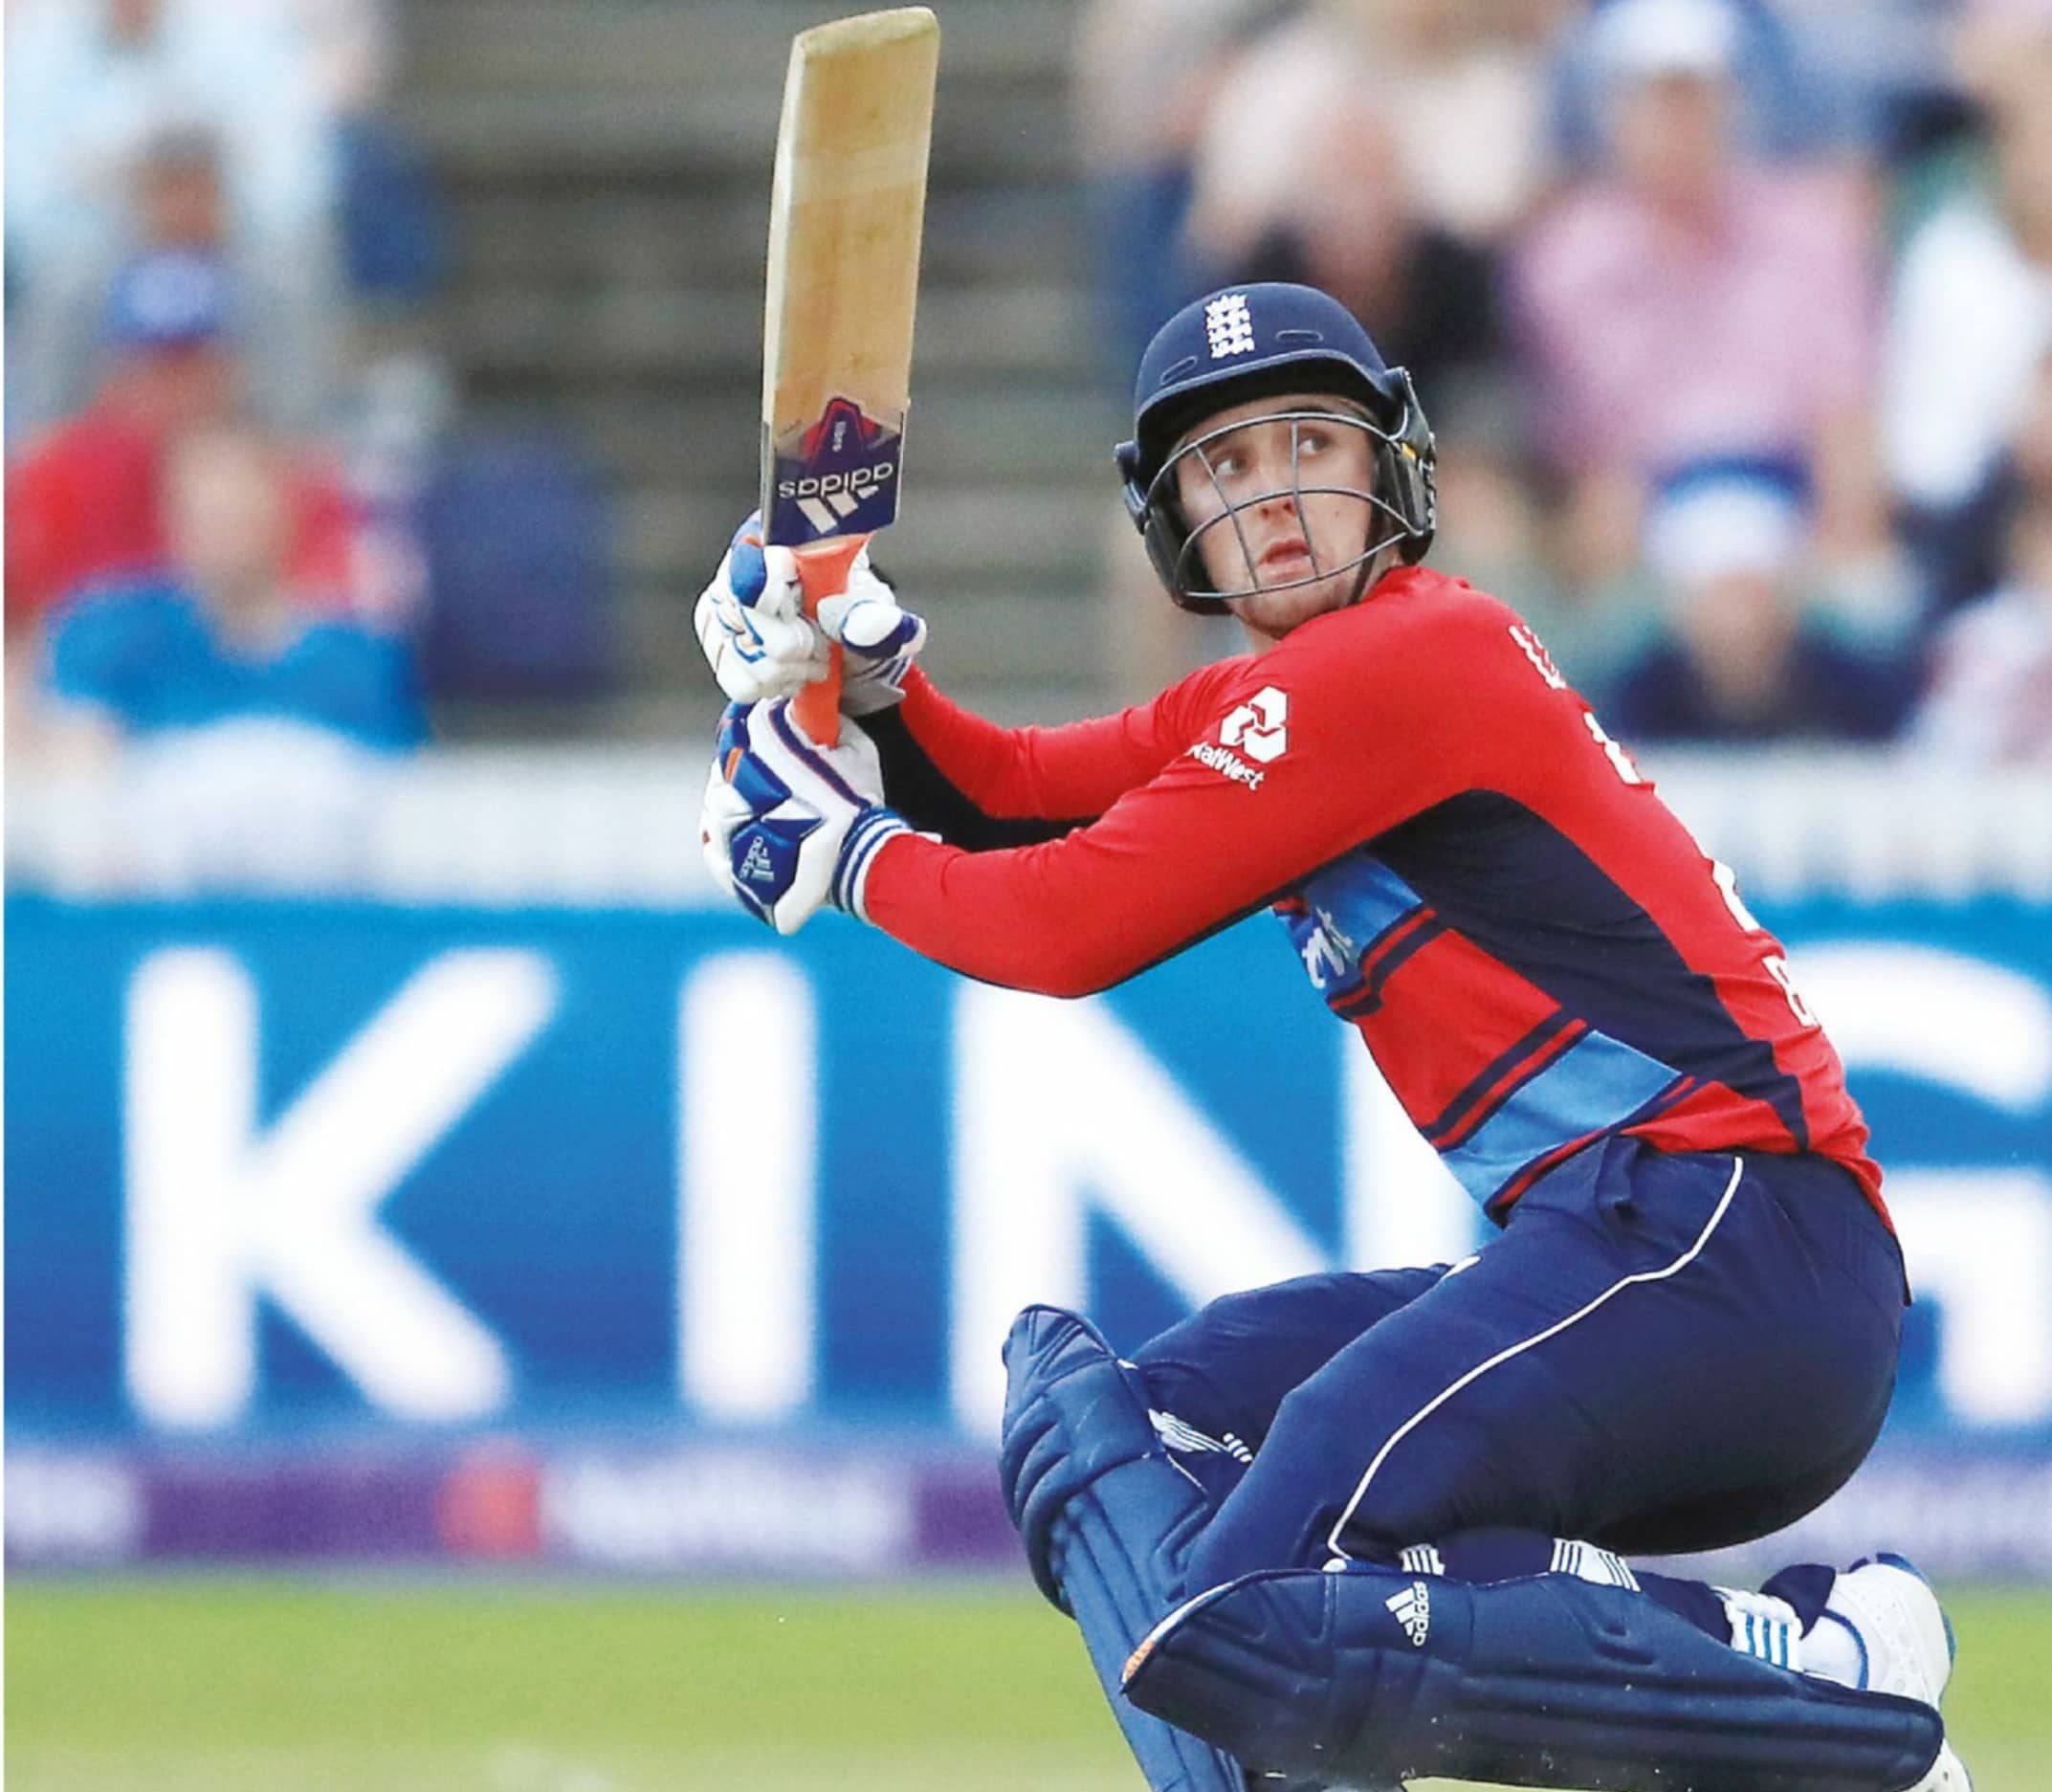 Livingstone Thrilled At IPL Call But Tests Still His Target